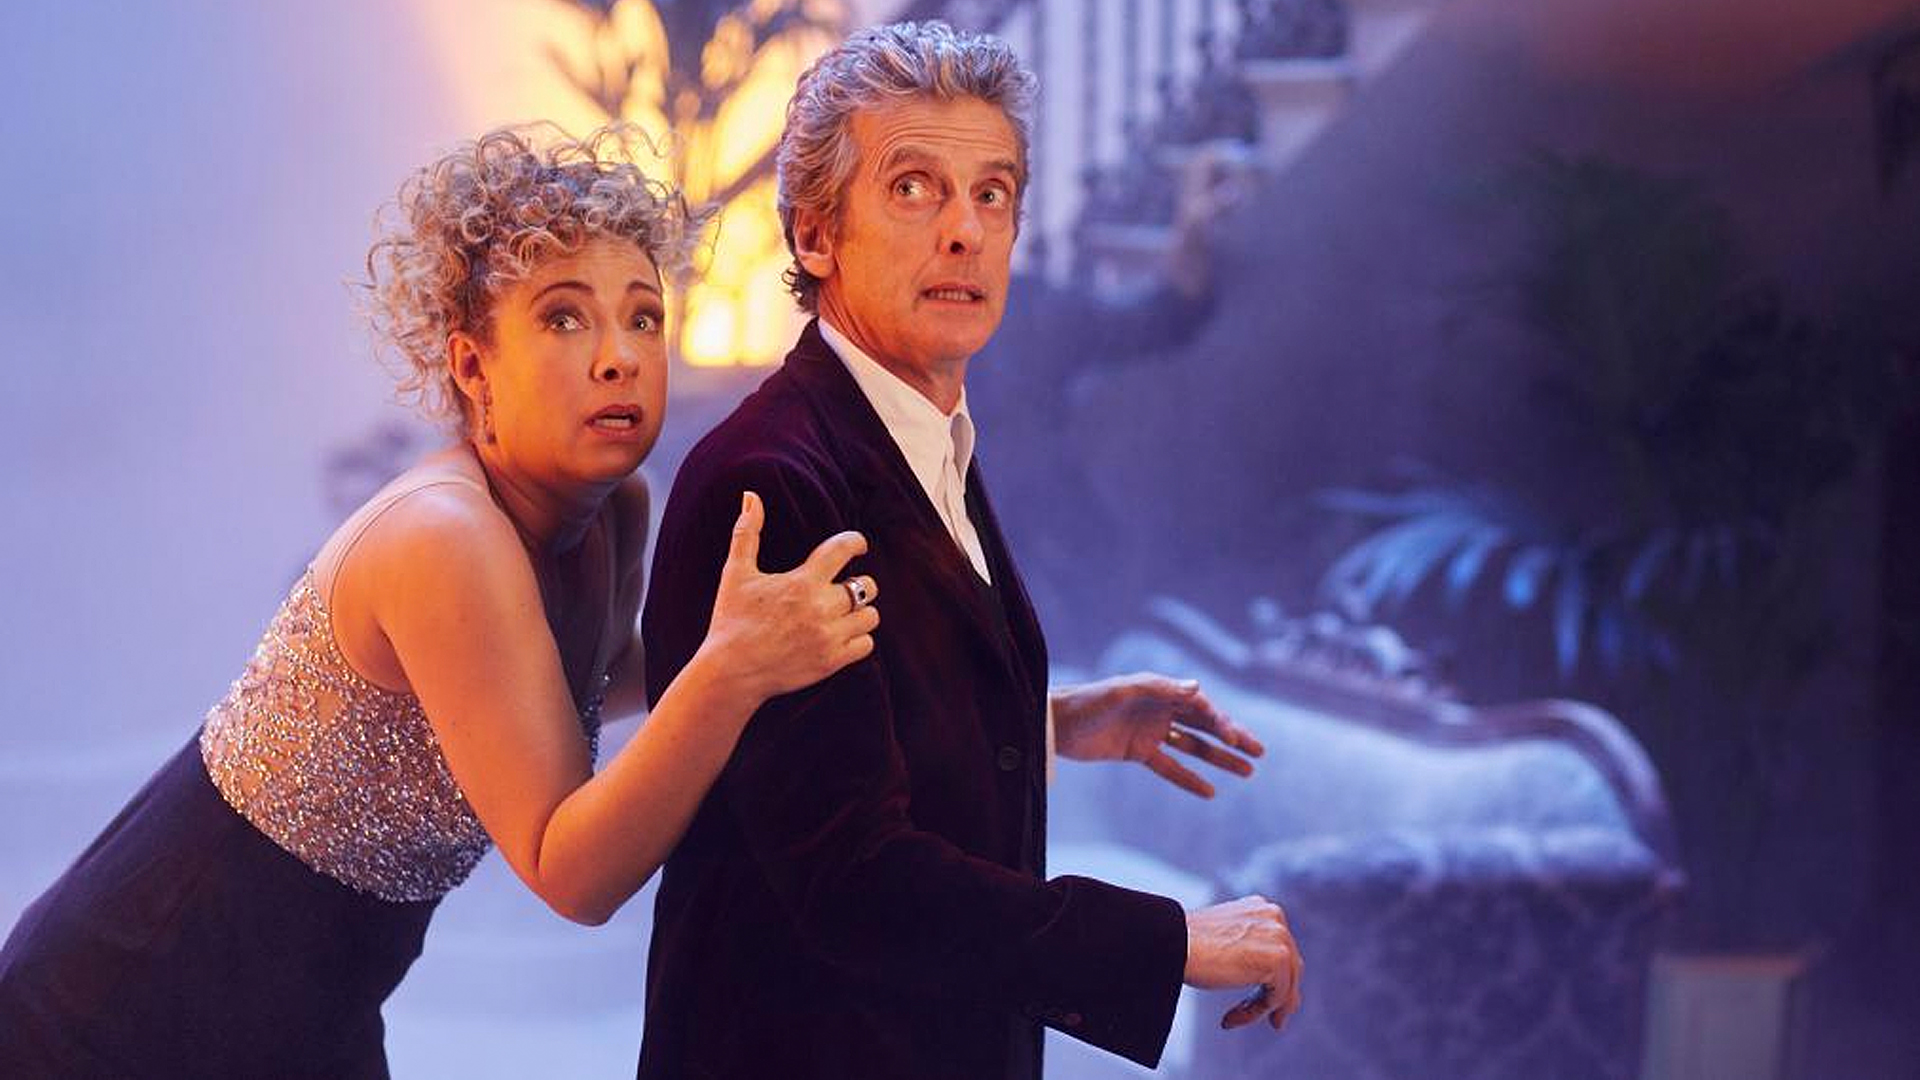 Peter Capaldi and Alex Kingston in the 'Doctor Who' Christmas special (Photo: BBC)